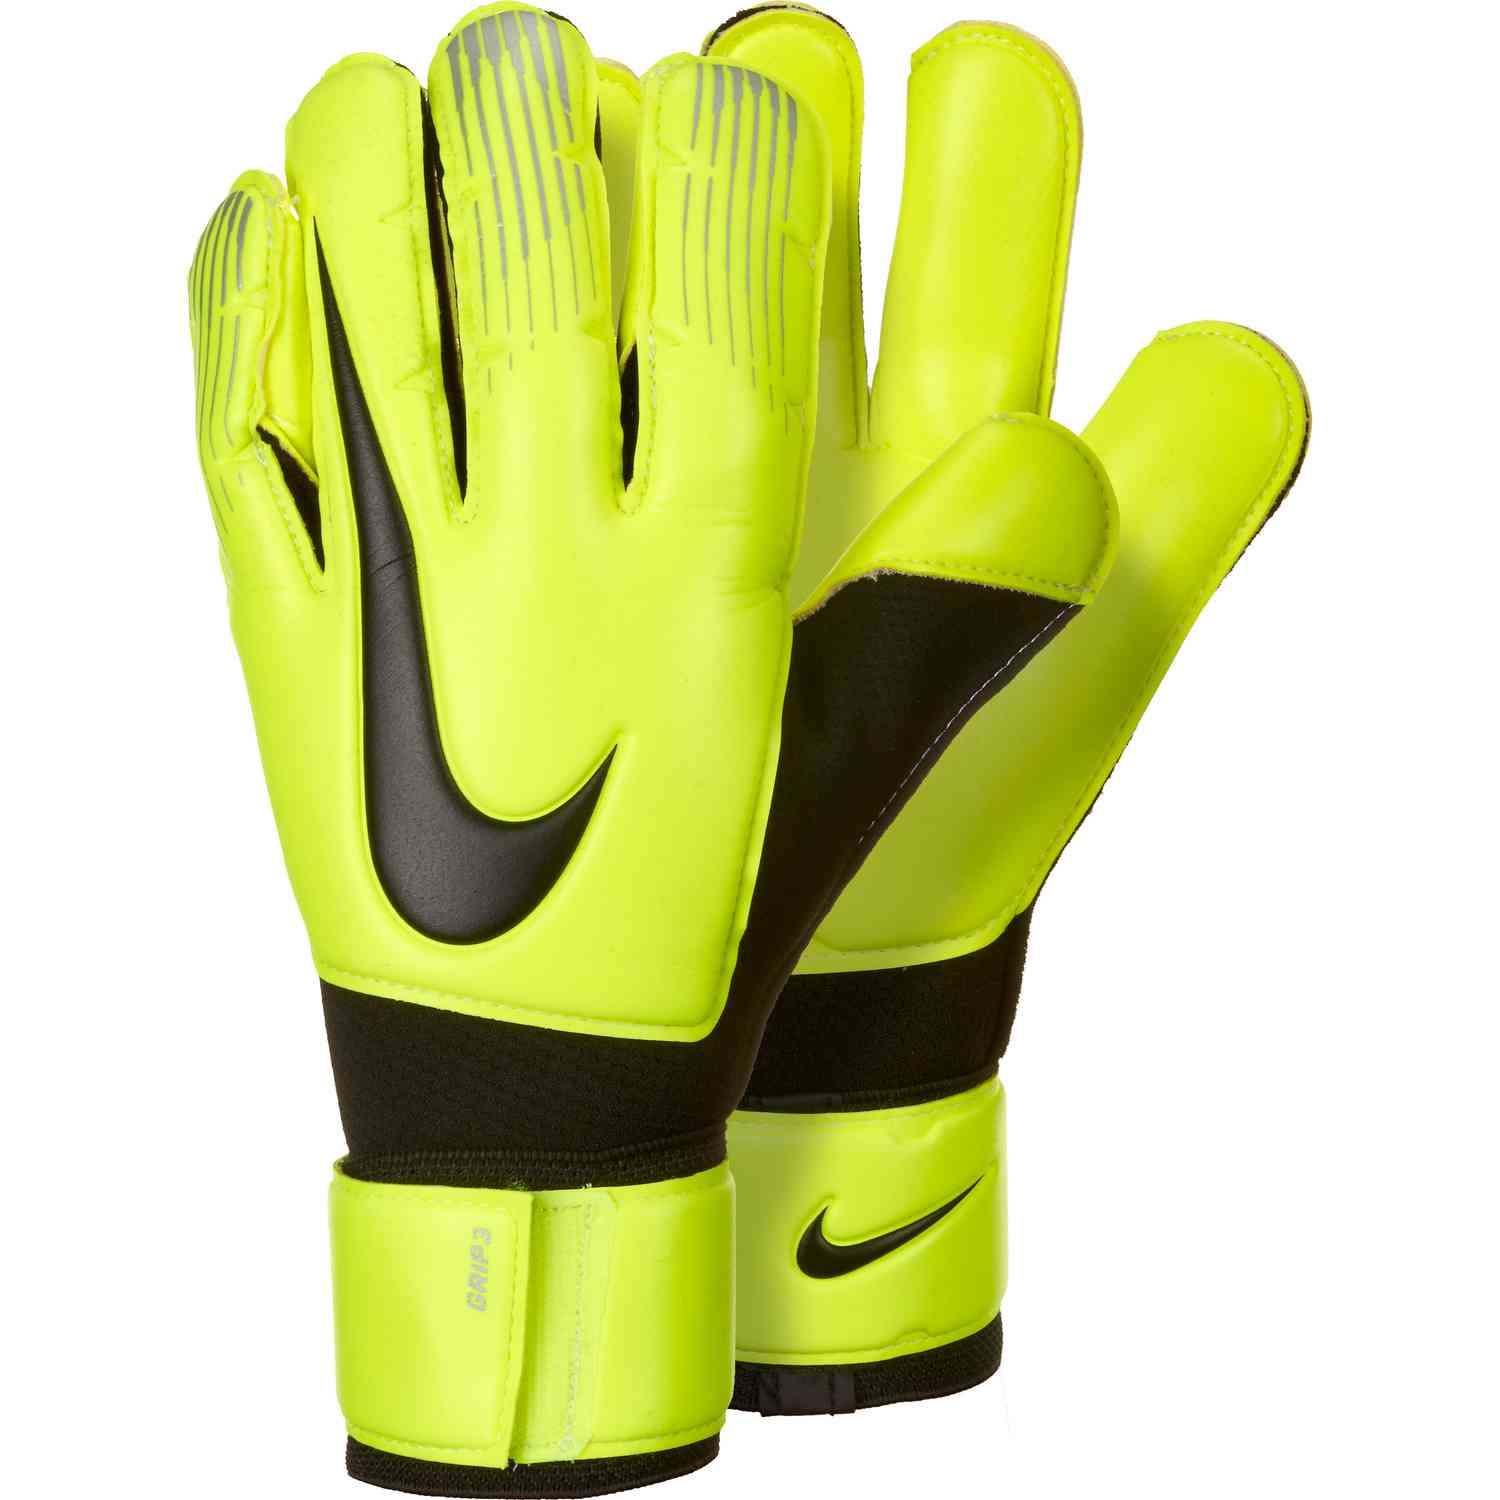 Nike Soccer Gloves: Nike Grip3 Goalkeeper Gloves